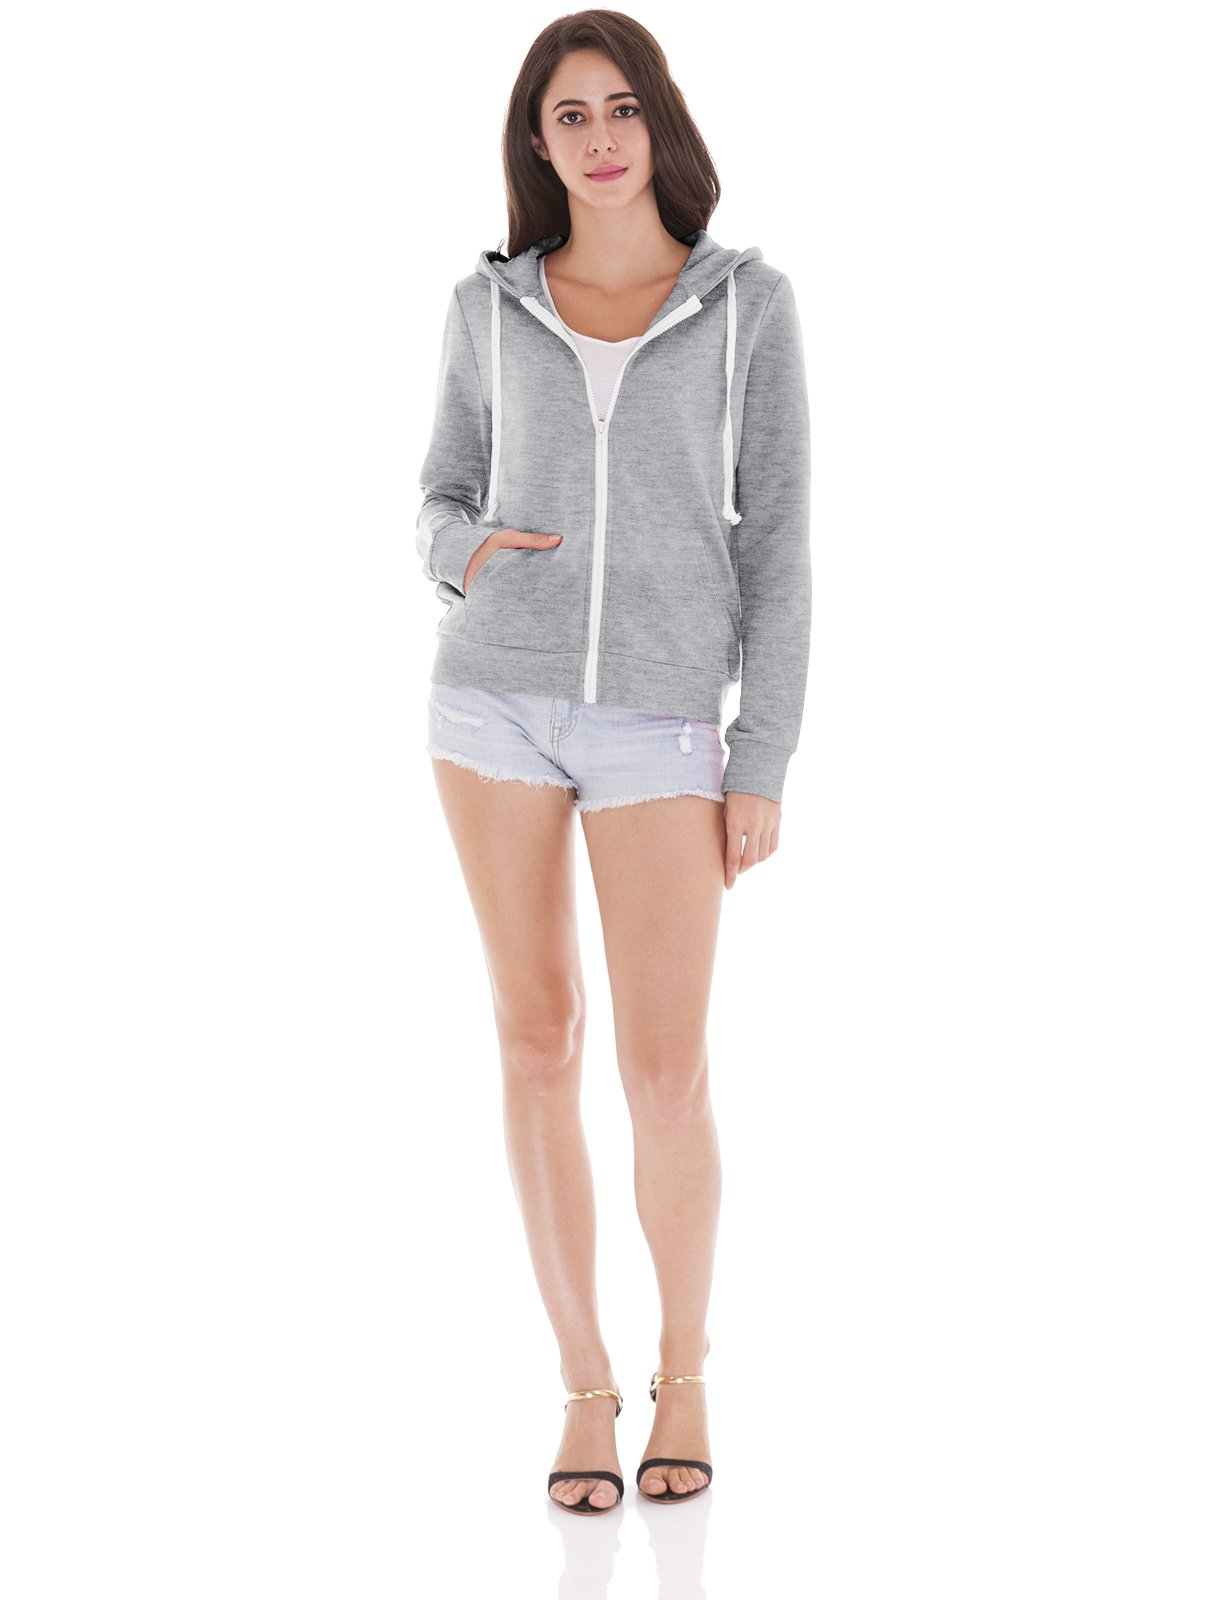 H2H Womens Soft Regular Fit Zip up Long Sleeve Fine Cotton Hoodie Jacket Gray US XS/Asia XS (CWOHOL020) by H2H (Image #5)